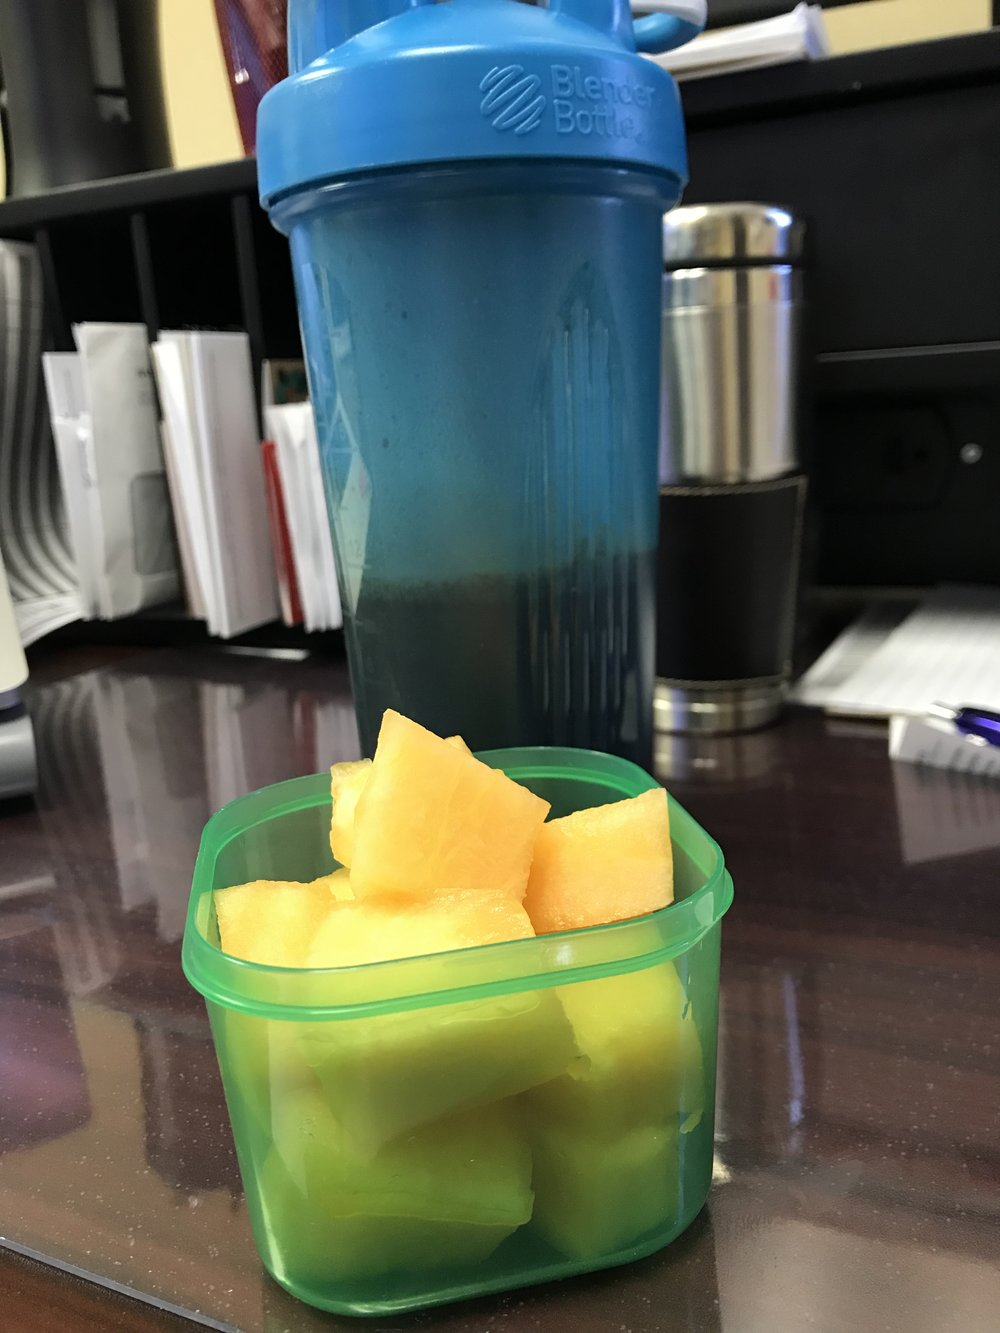 MID-AFTERNOON SNACK - Chocolate Shakeology and Cantaloupe Melon